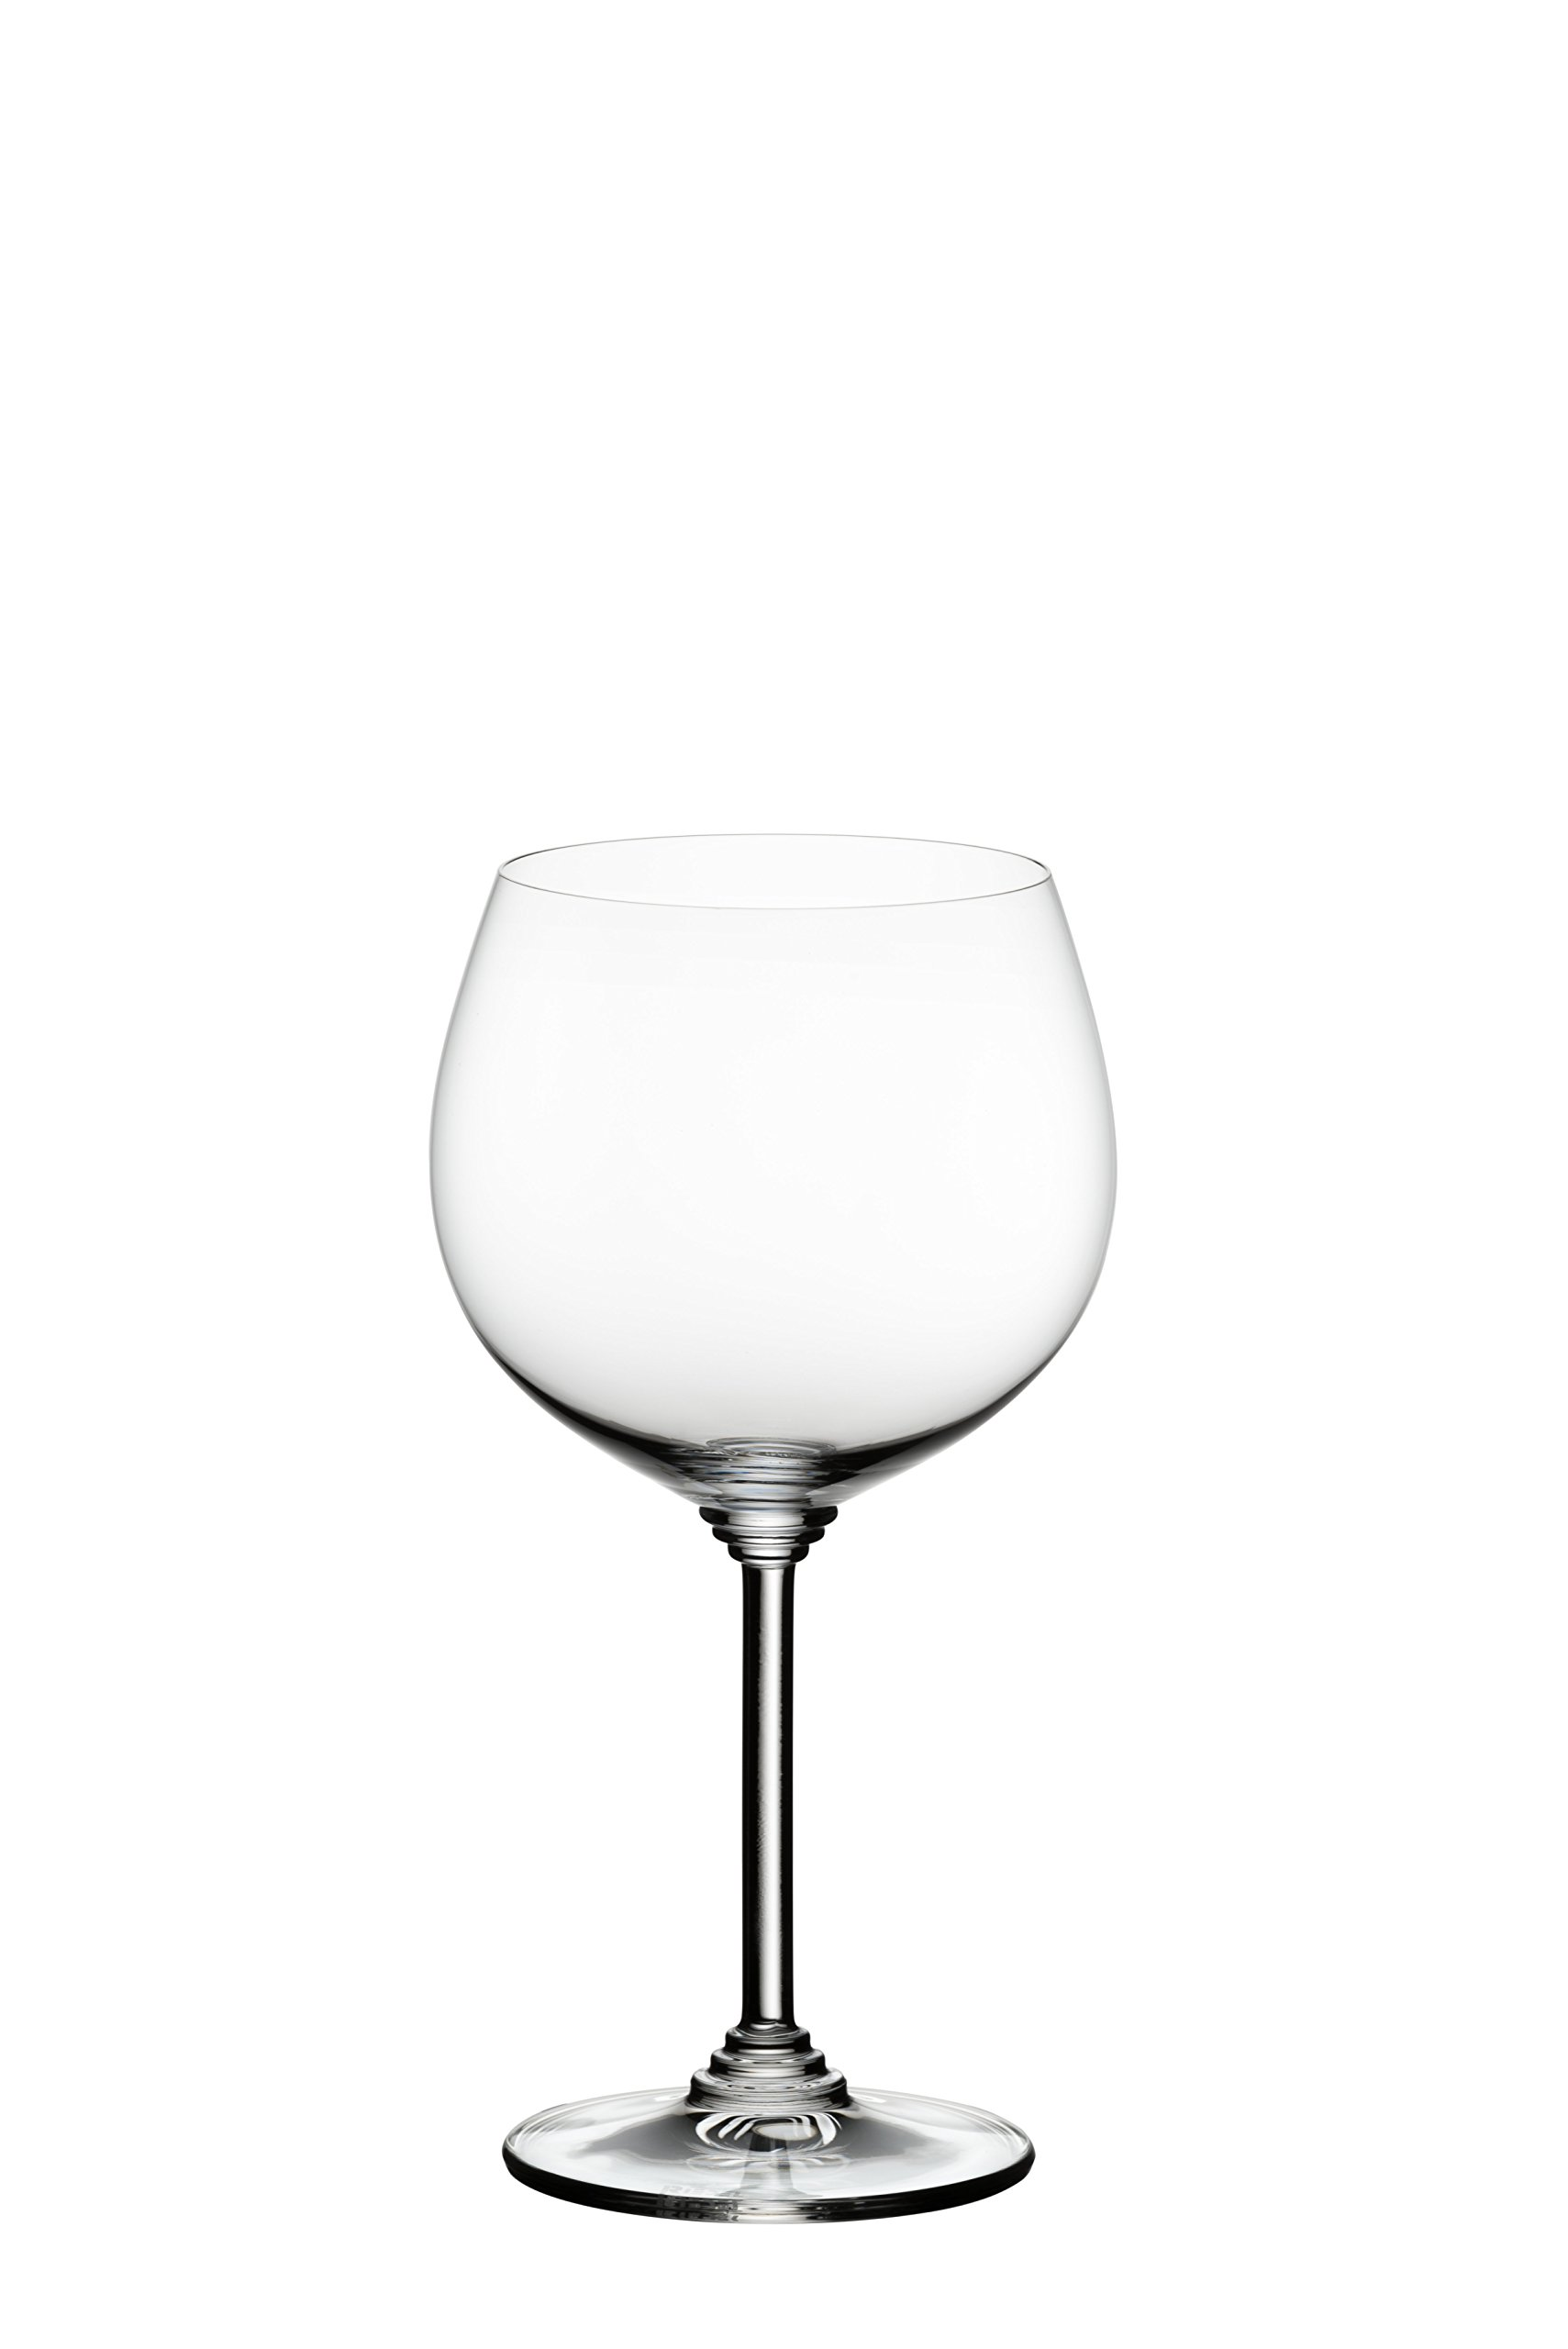 Riedel Wine Series Oaked Chardonnay Glass, Set of 2